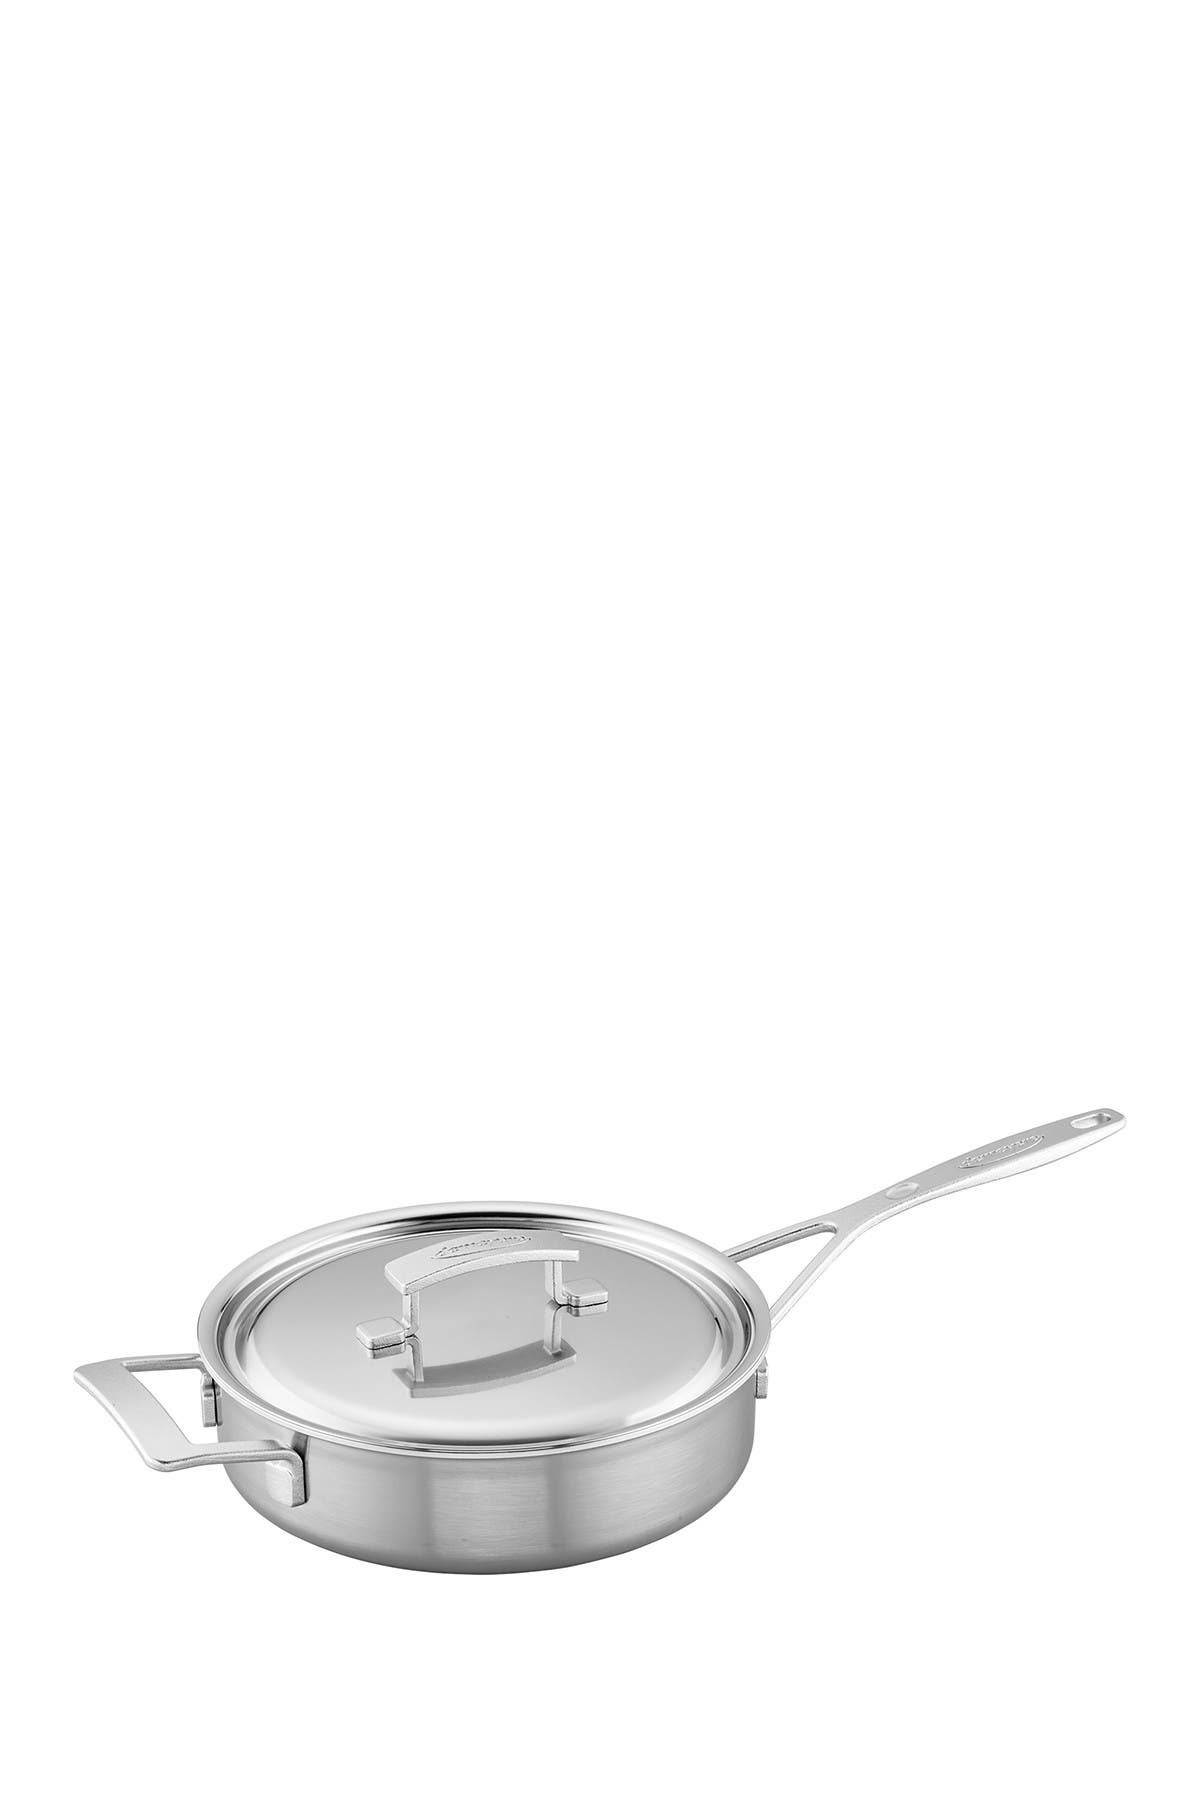 Image of Demeyere Industry 5-Ply 3-Qt. Stainless Steel Saute Pan